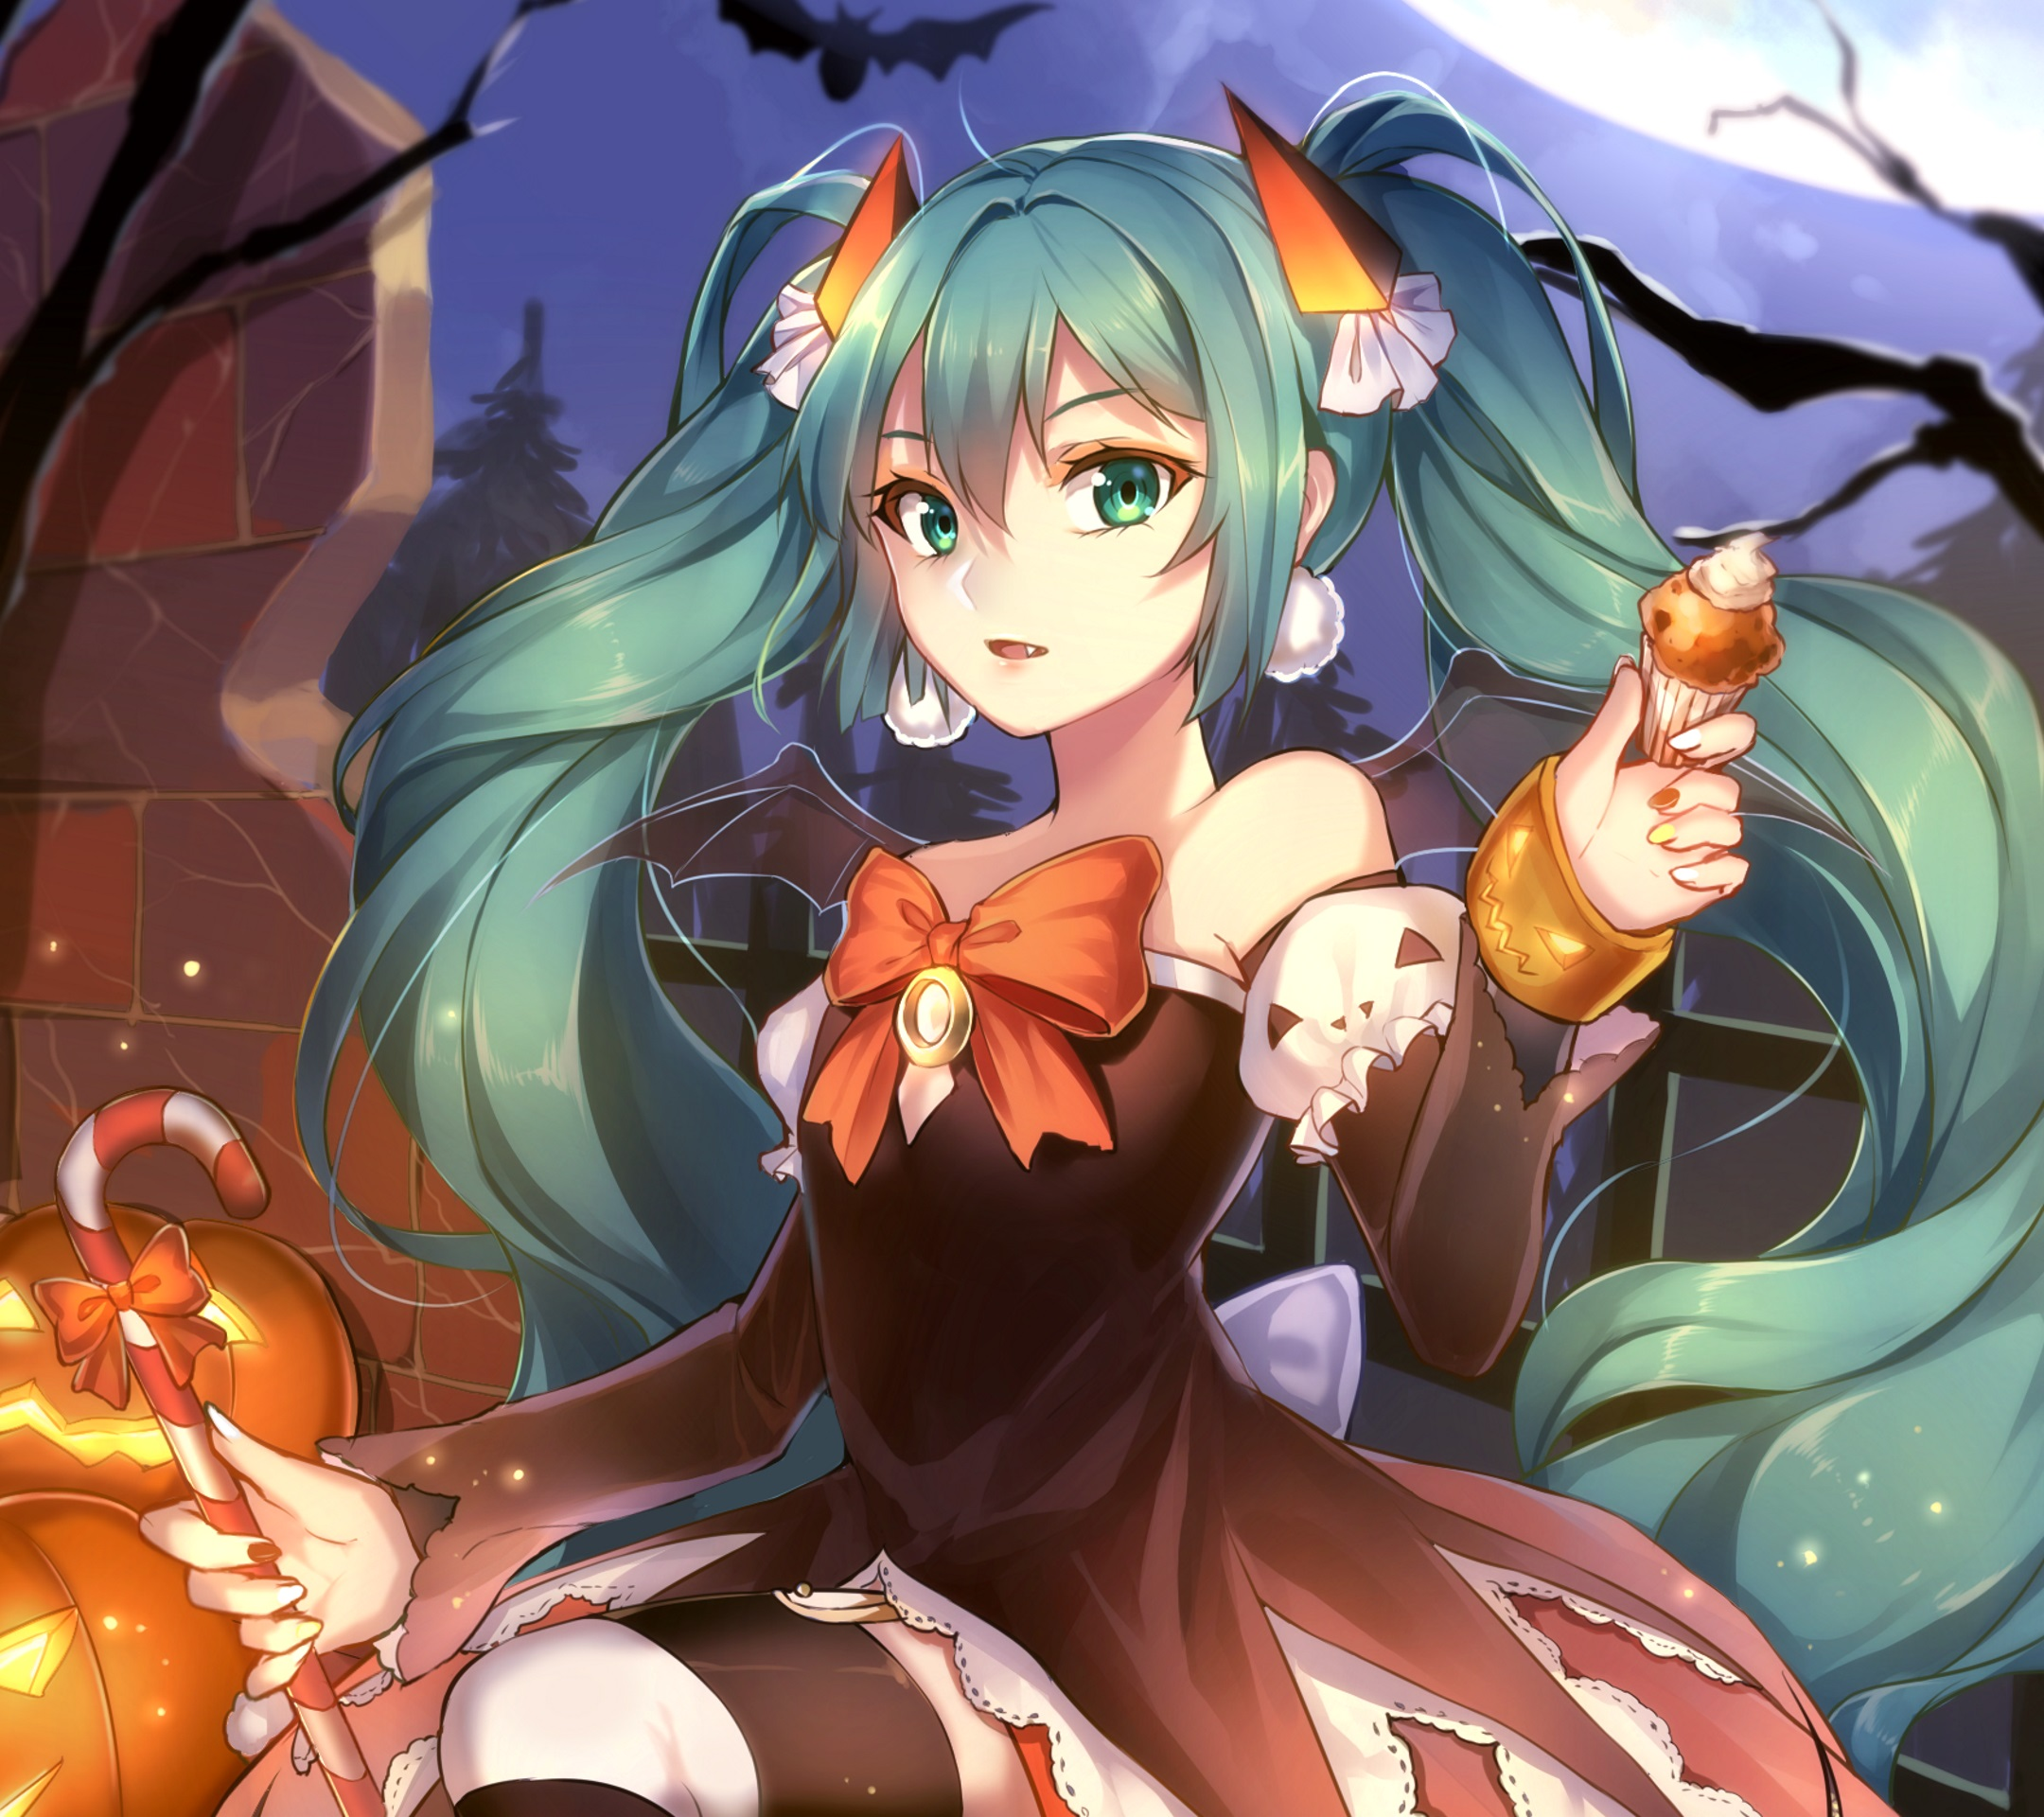 halloween anime 2015.android wallpaper 2160x1920